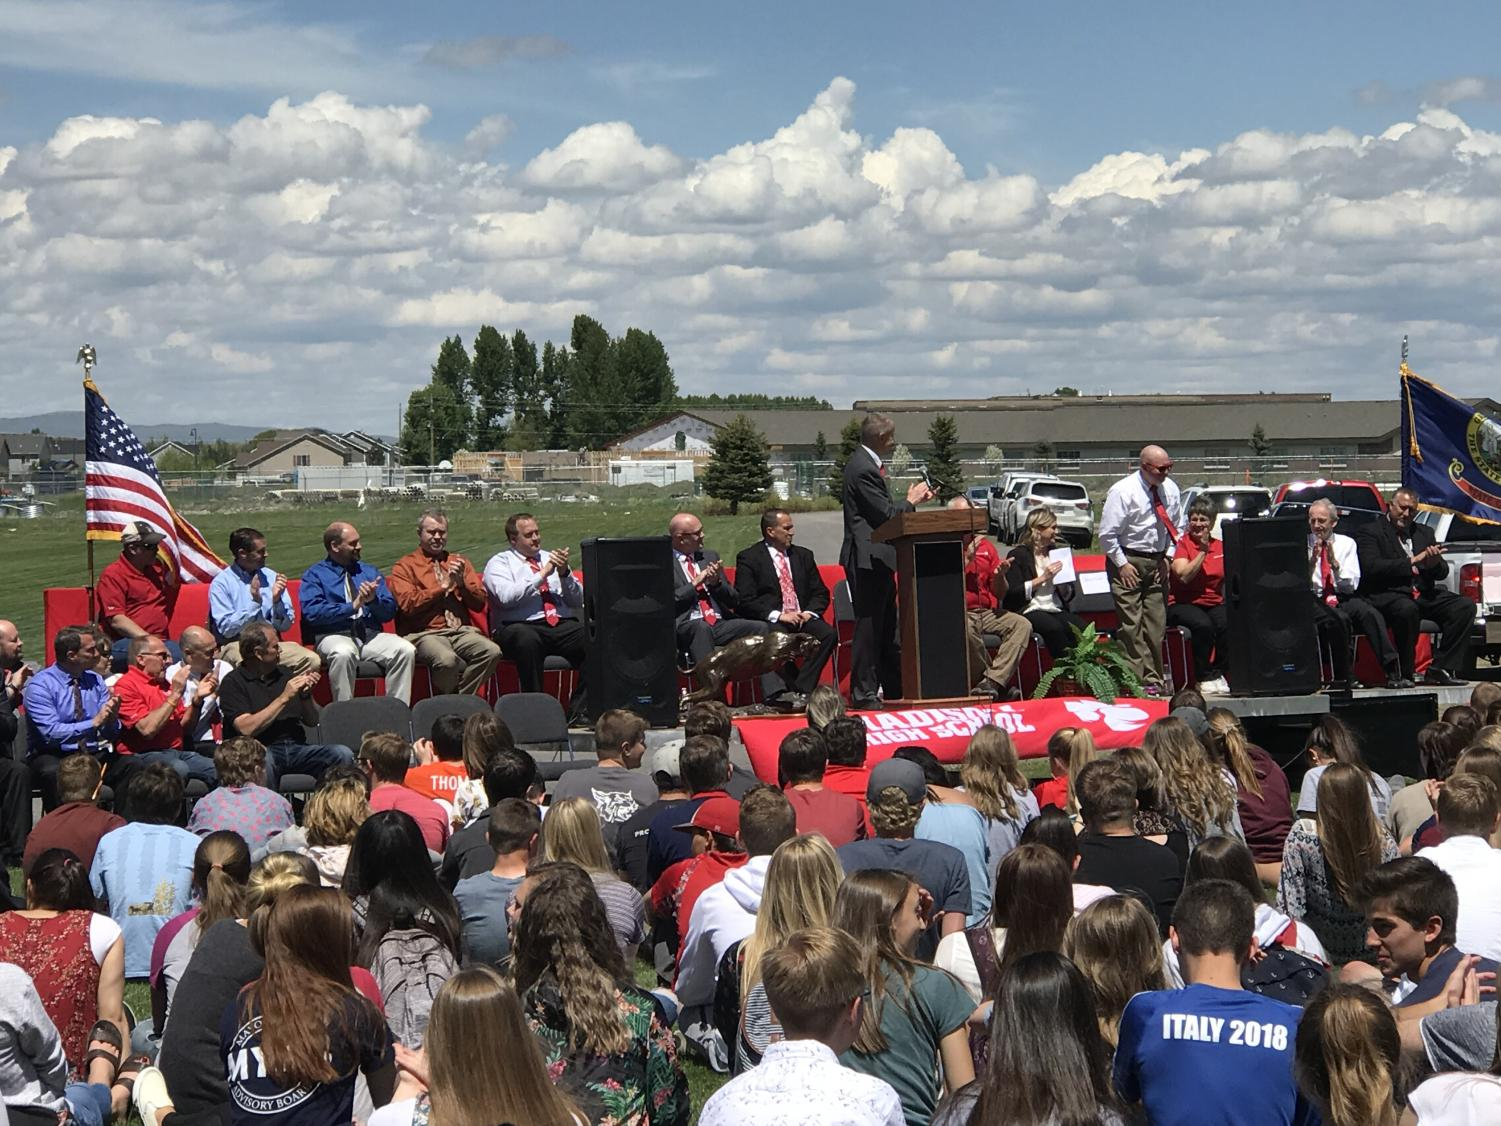 Students listen to Sr. Thomas as he intorduces the School board members at the Groundbreaking Ceremony.